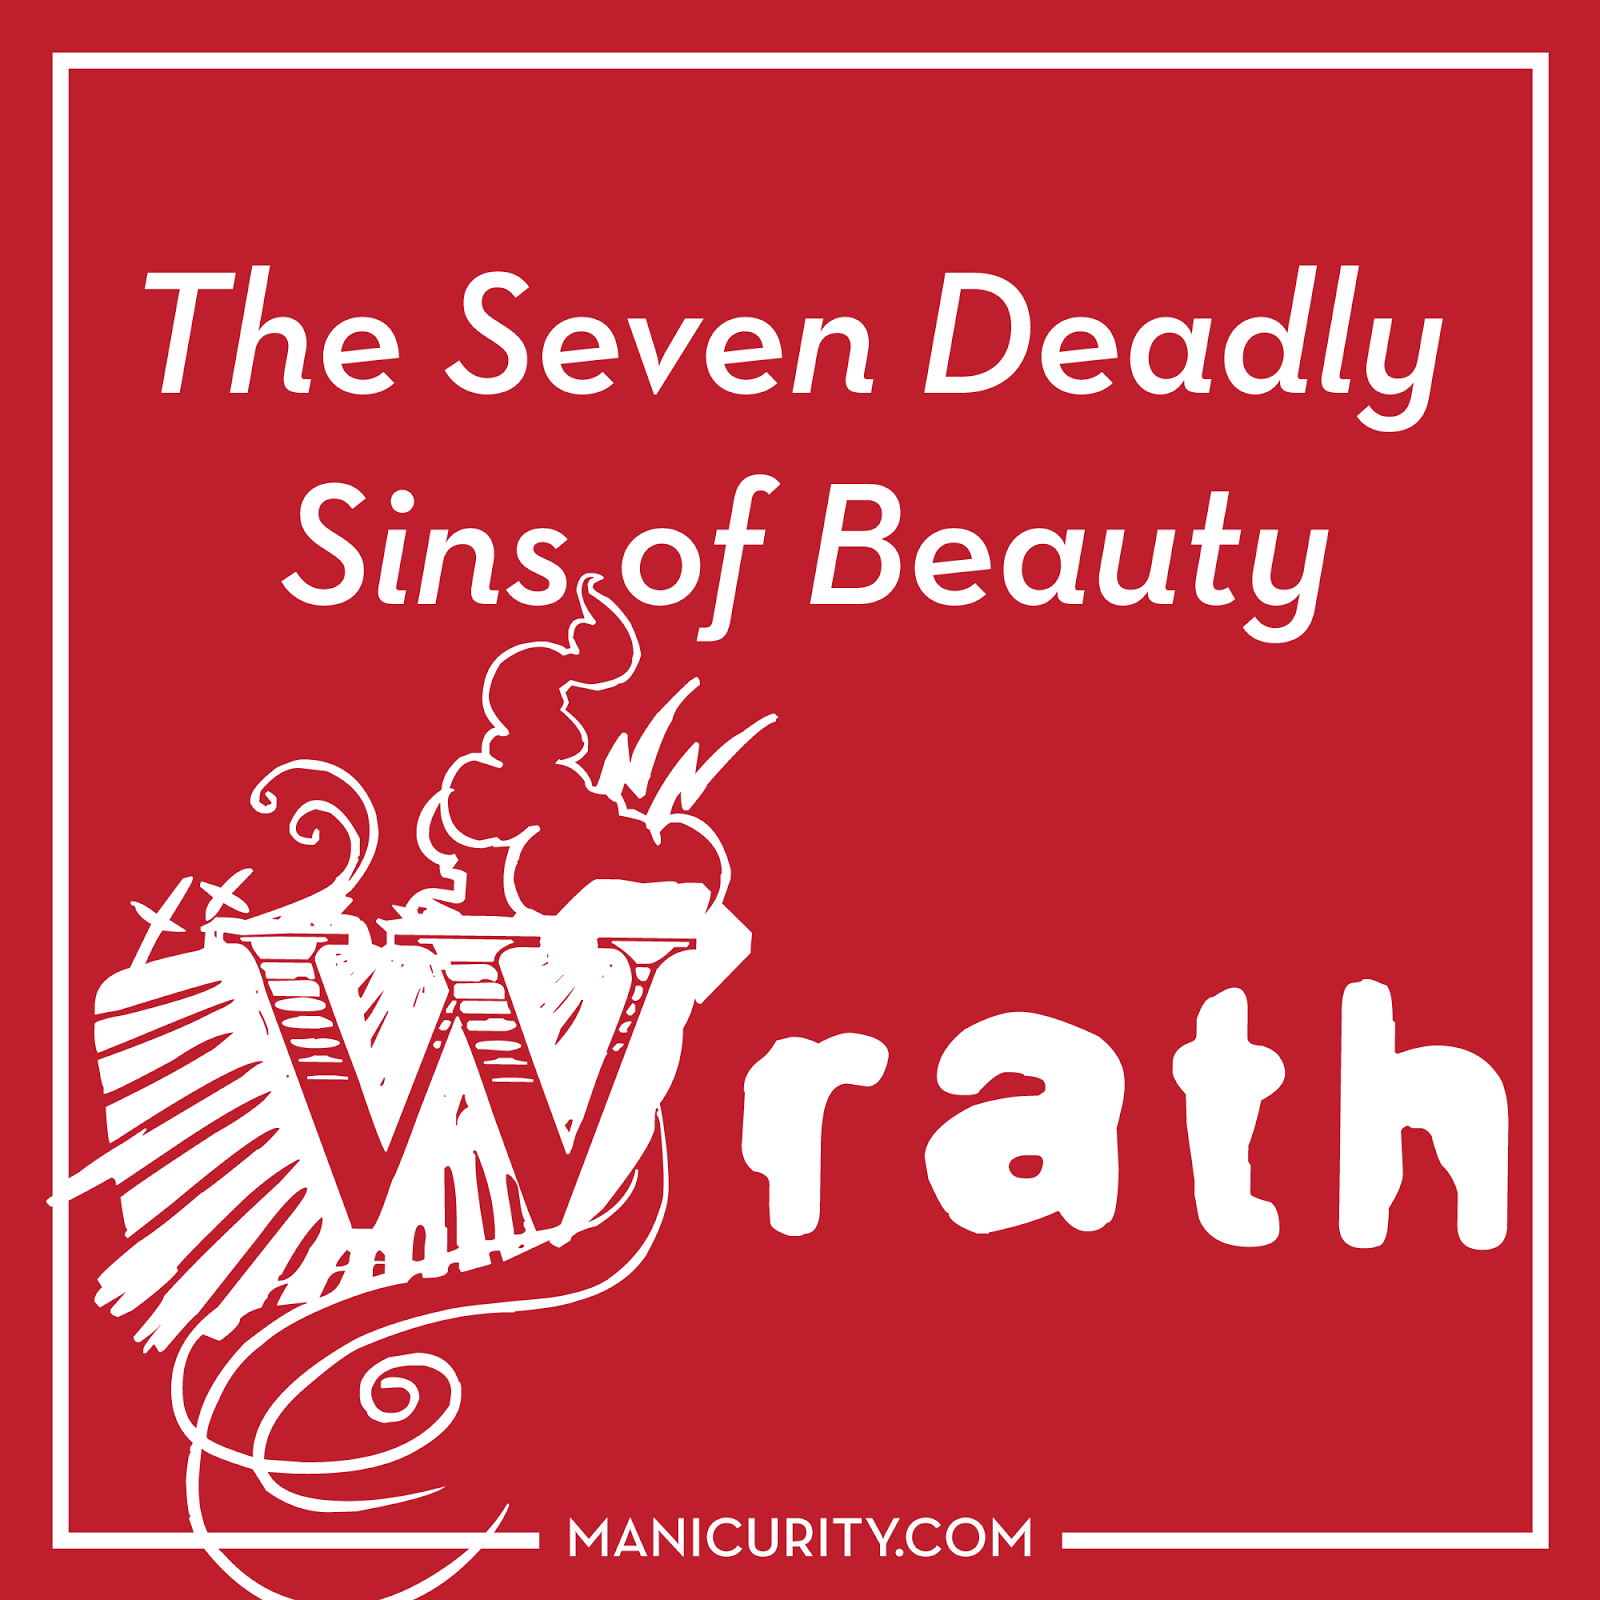 The Seven Deadly Sins of Beauty Tag - Talking about Wrath i.e. all those products we love/hate with Manicurity.com